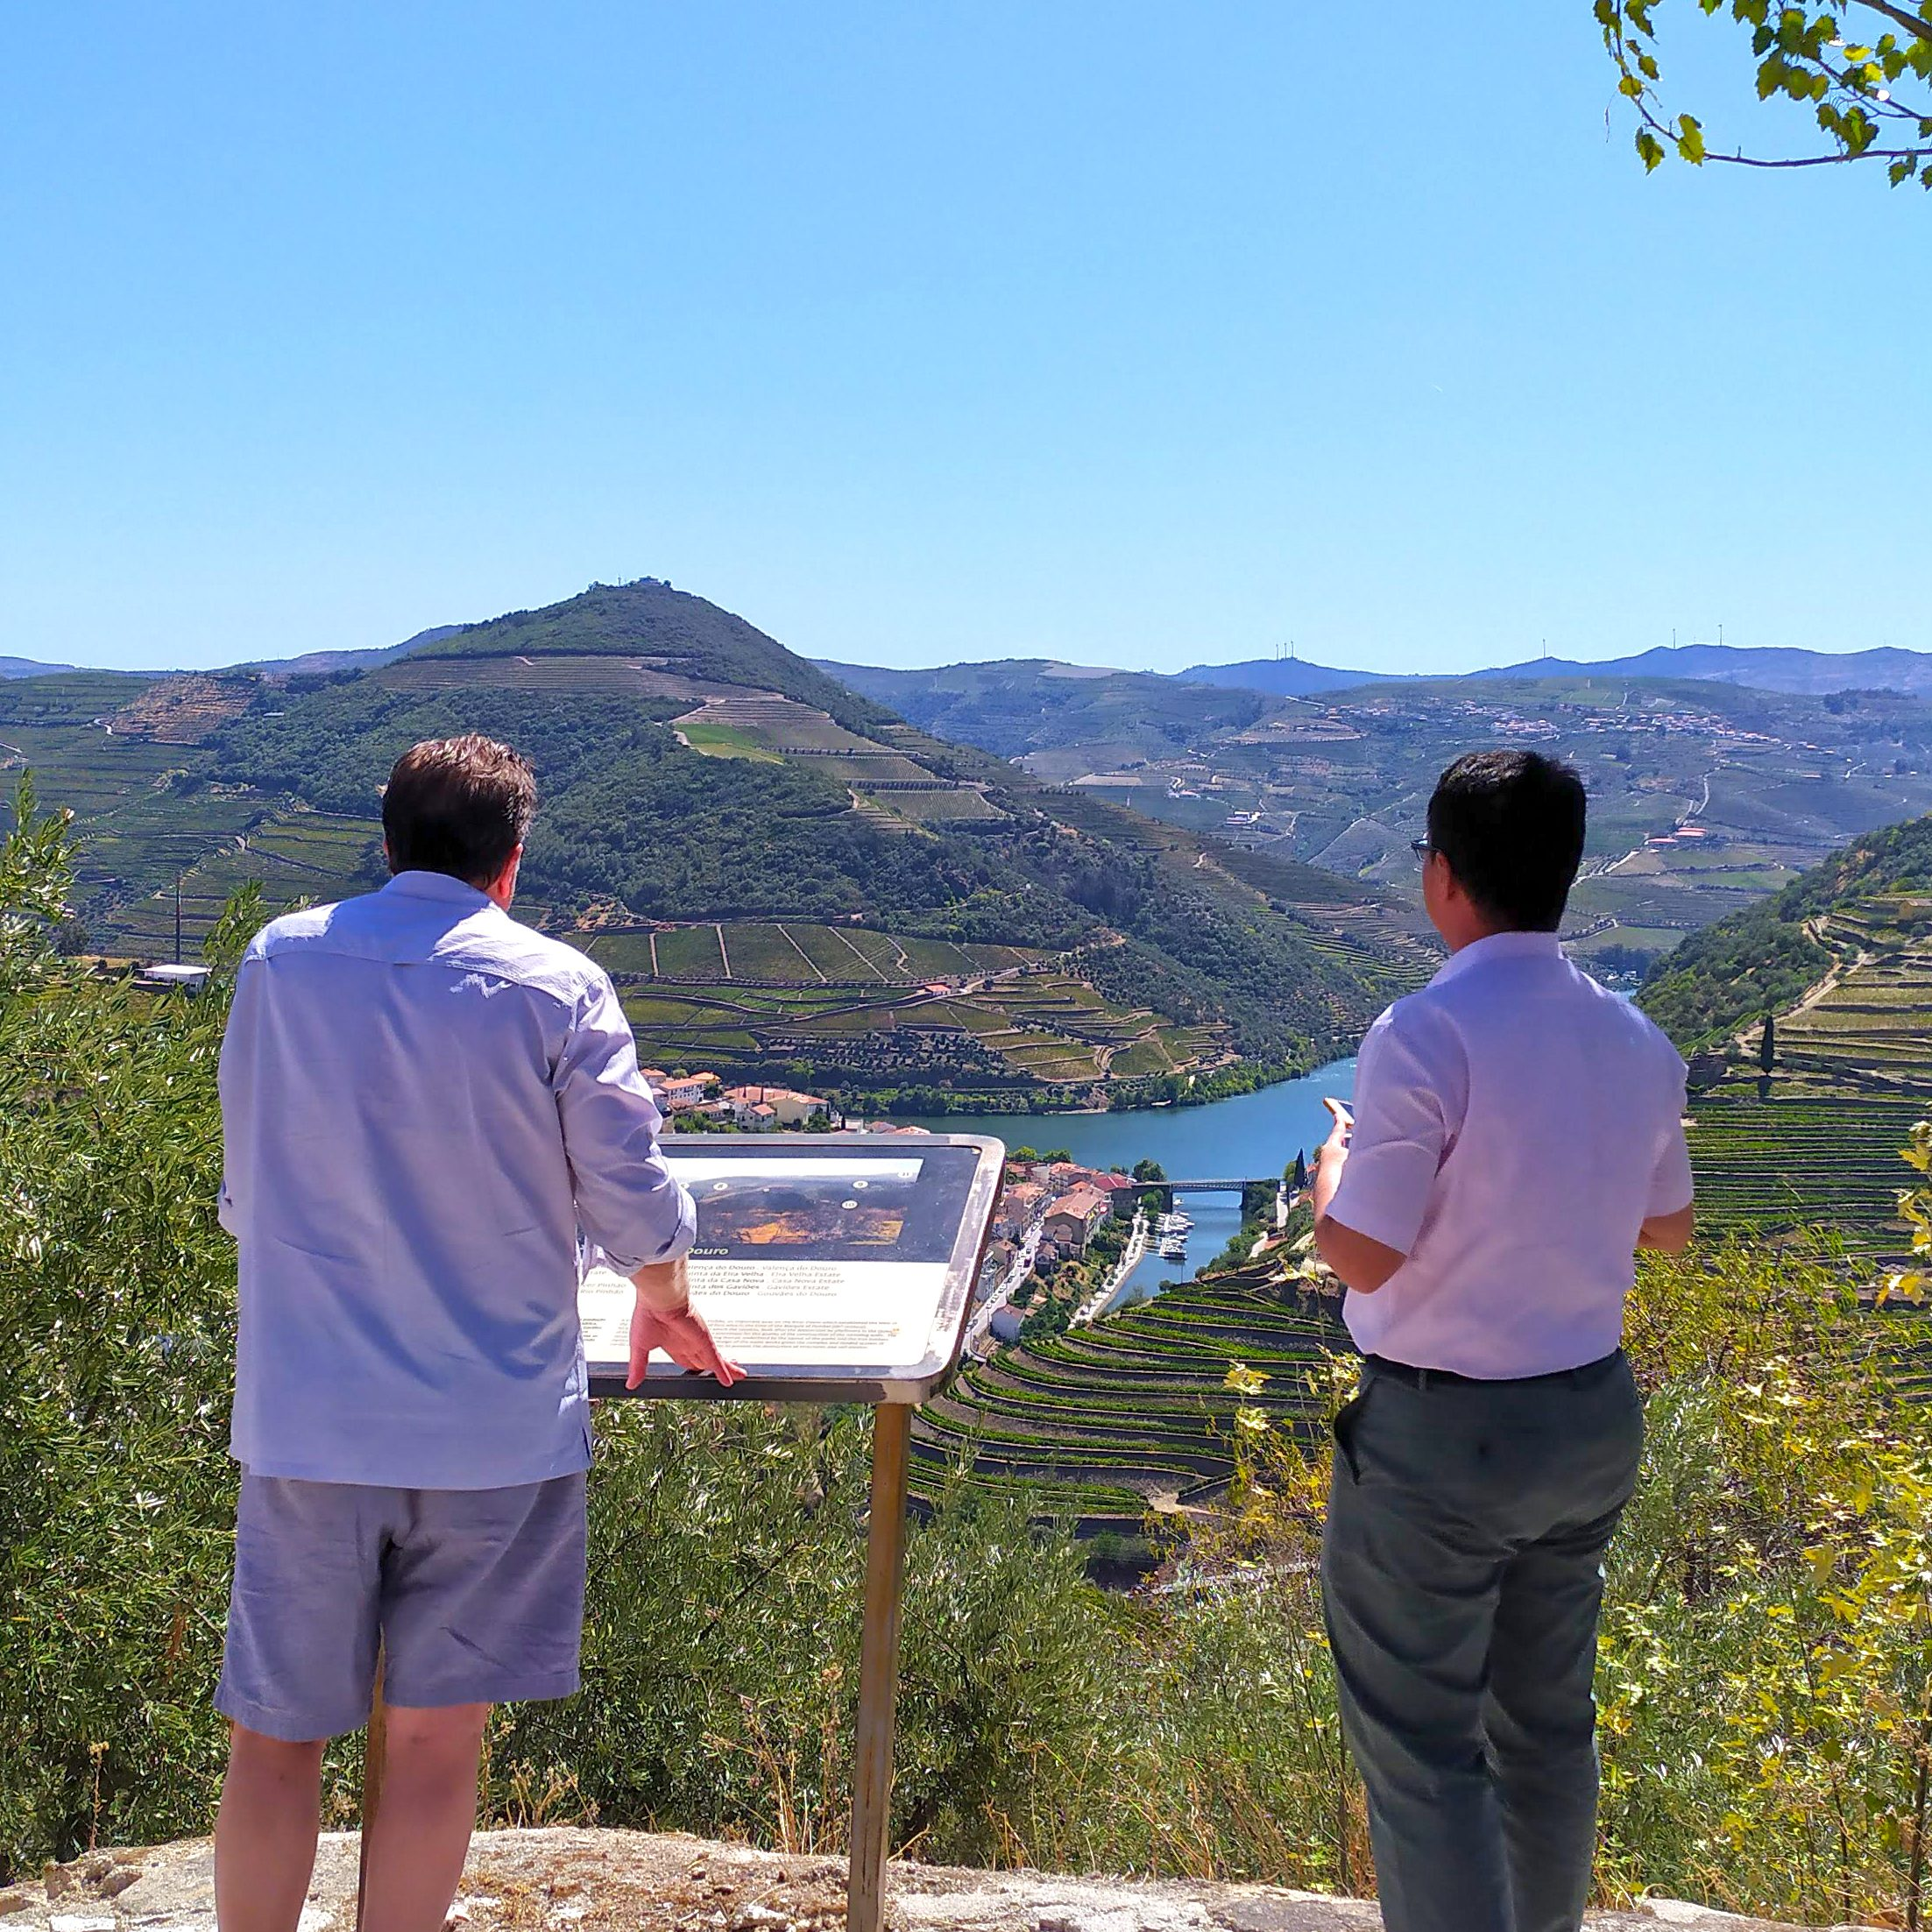 viewpoint in douro looking to the river between mountains